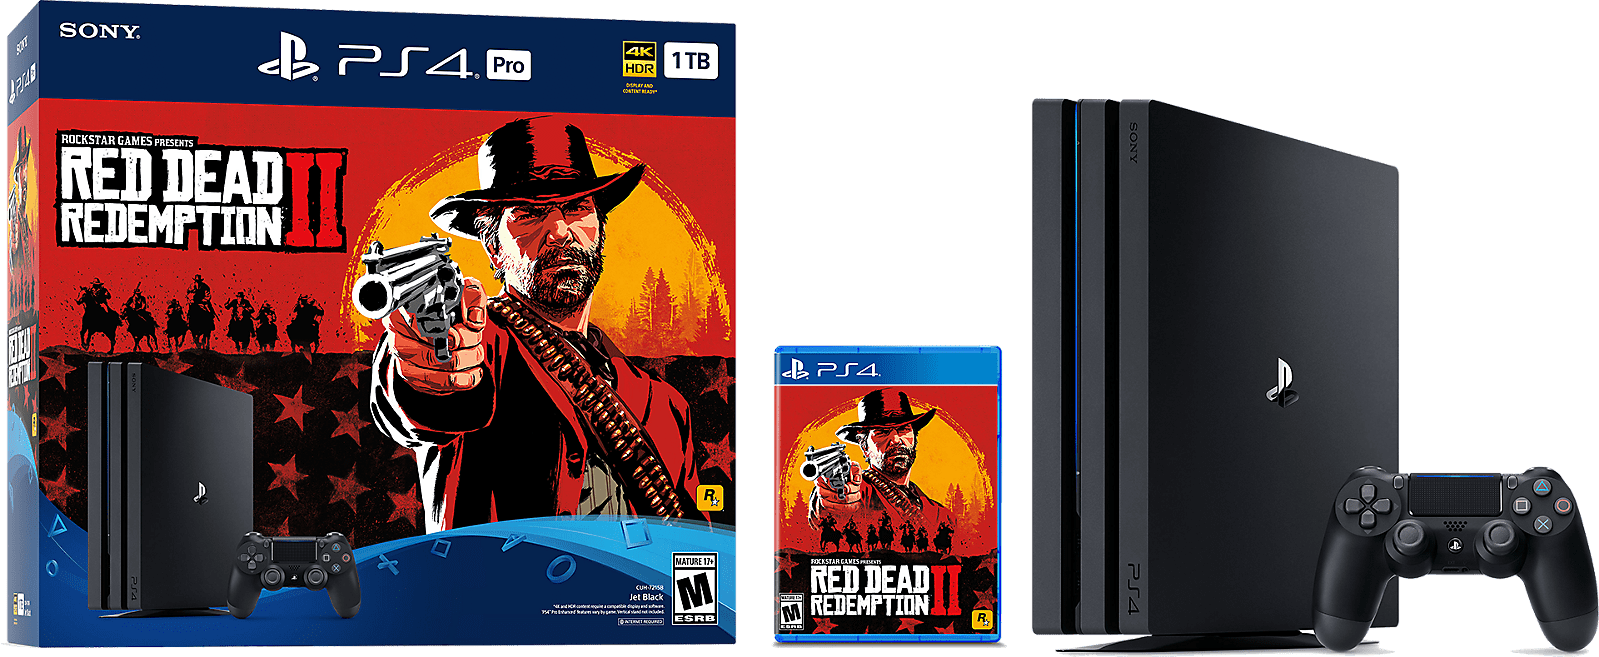 Red Dead Redemption 2 PS4 Pro Bundle, Install Size and more